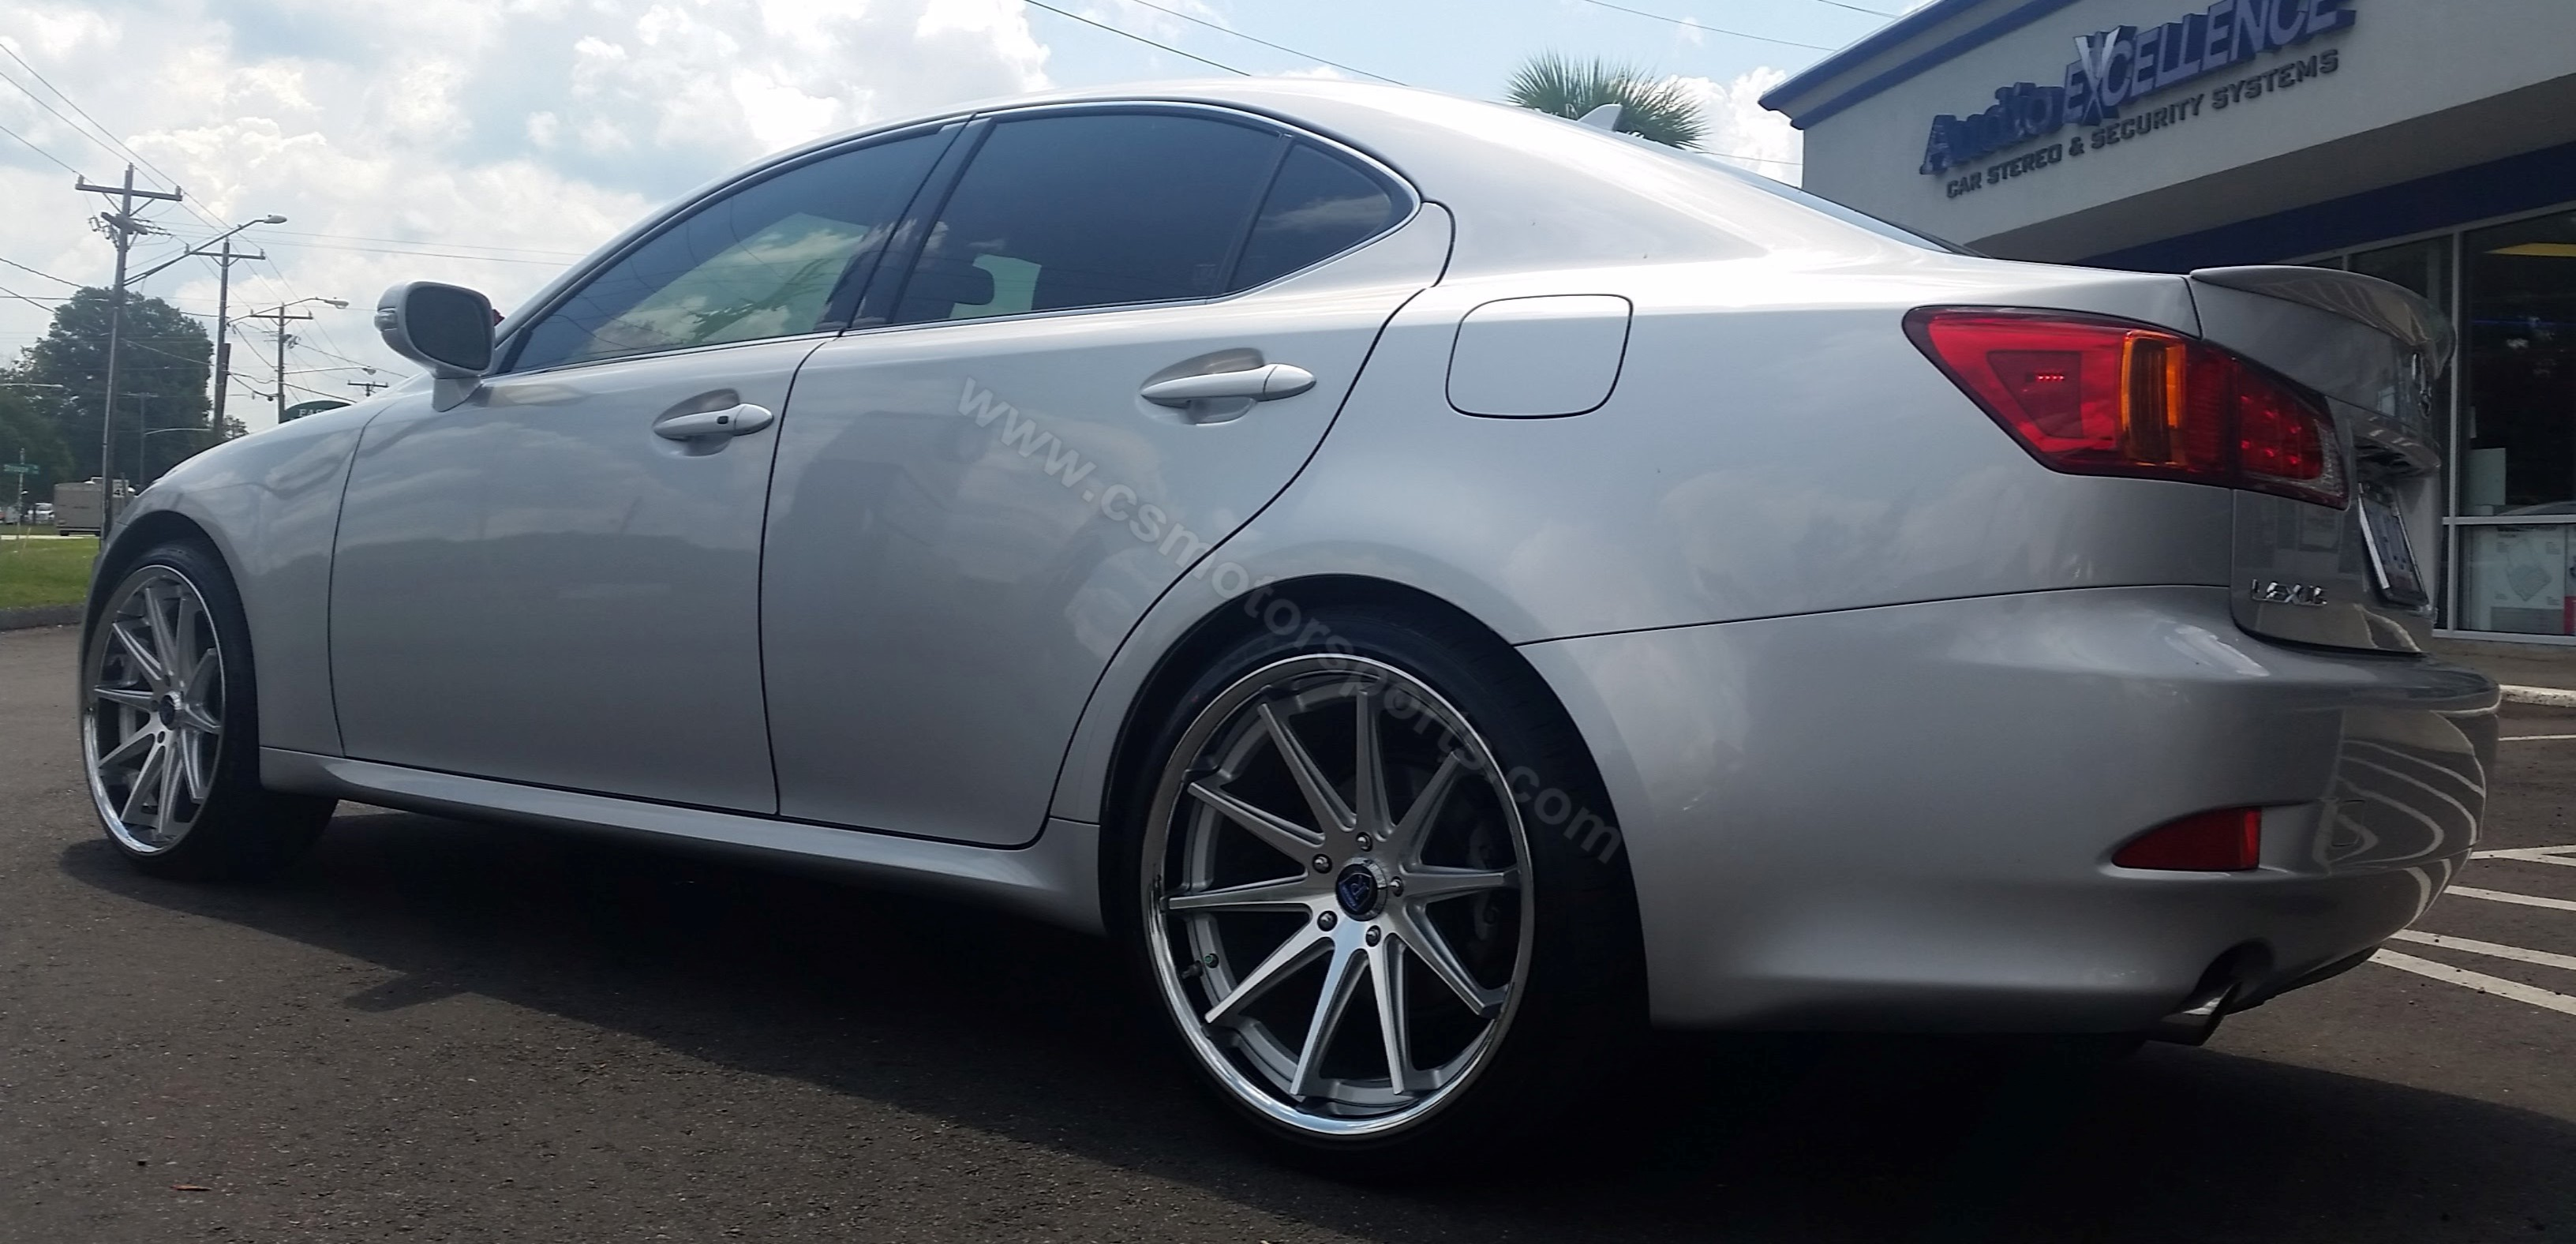 2010 Lexus IS250